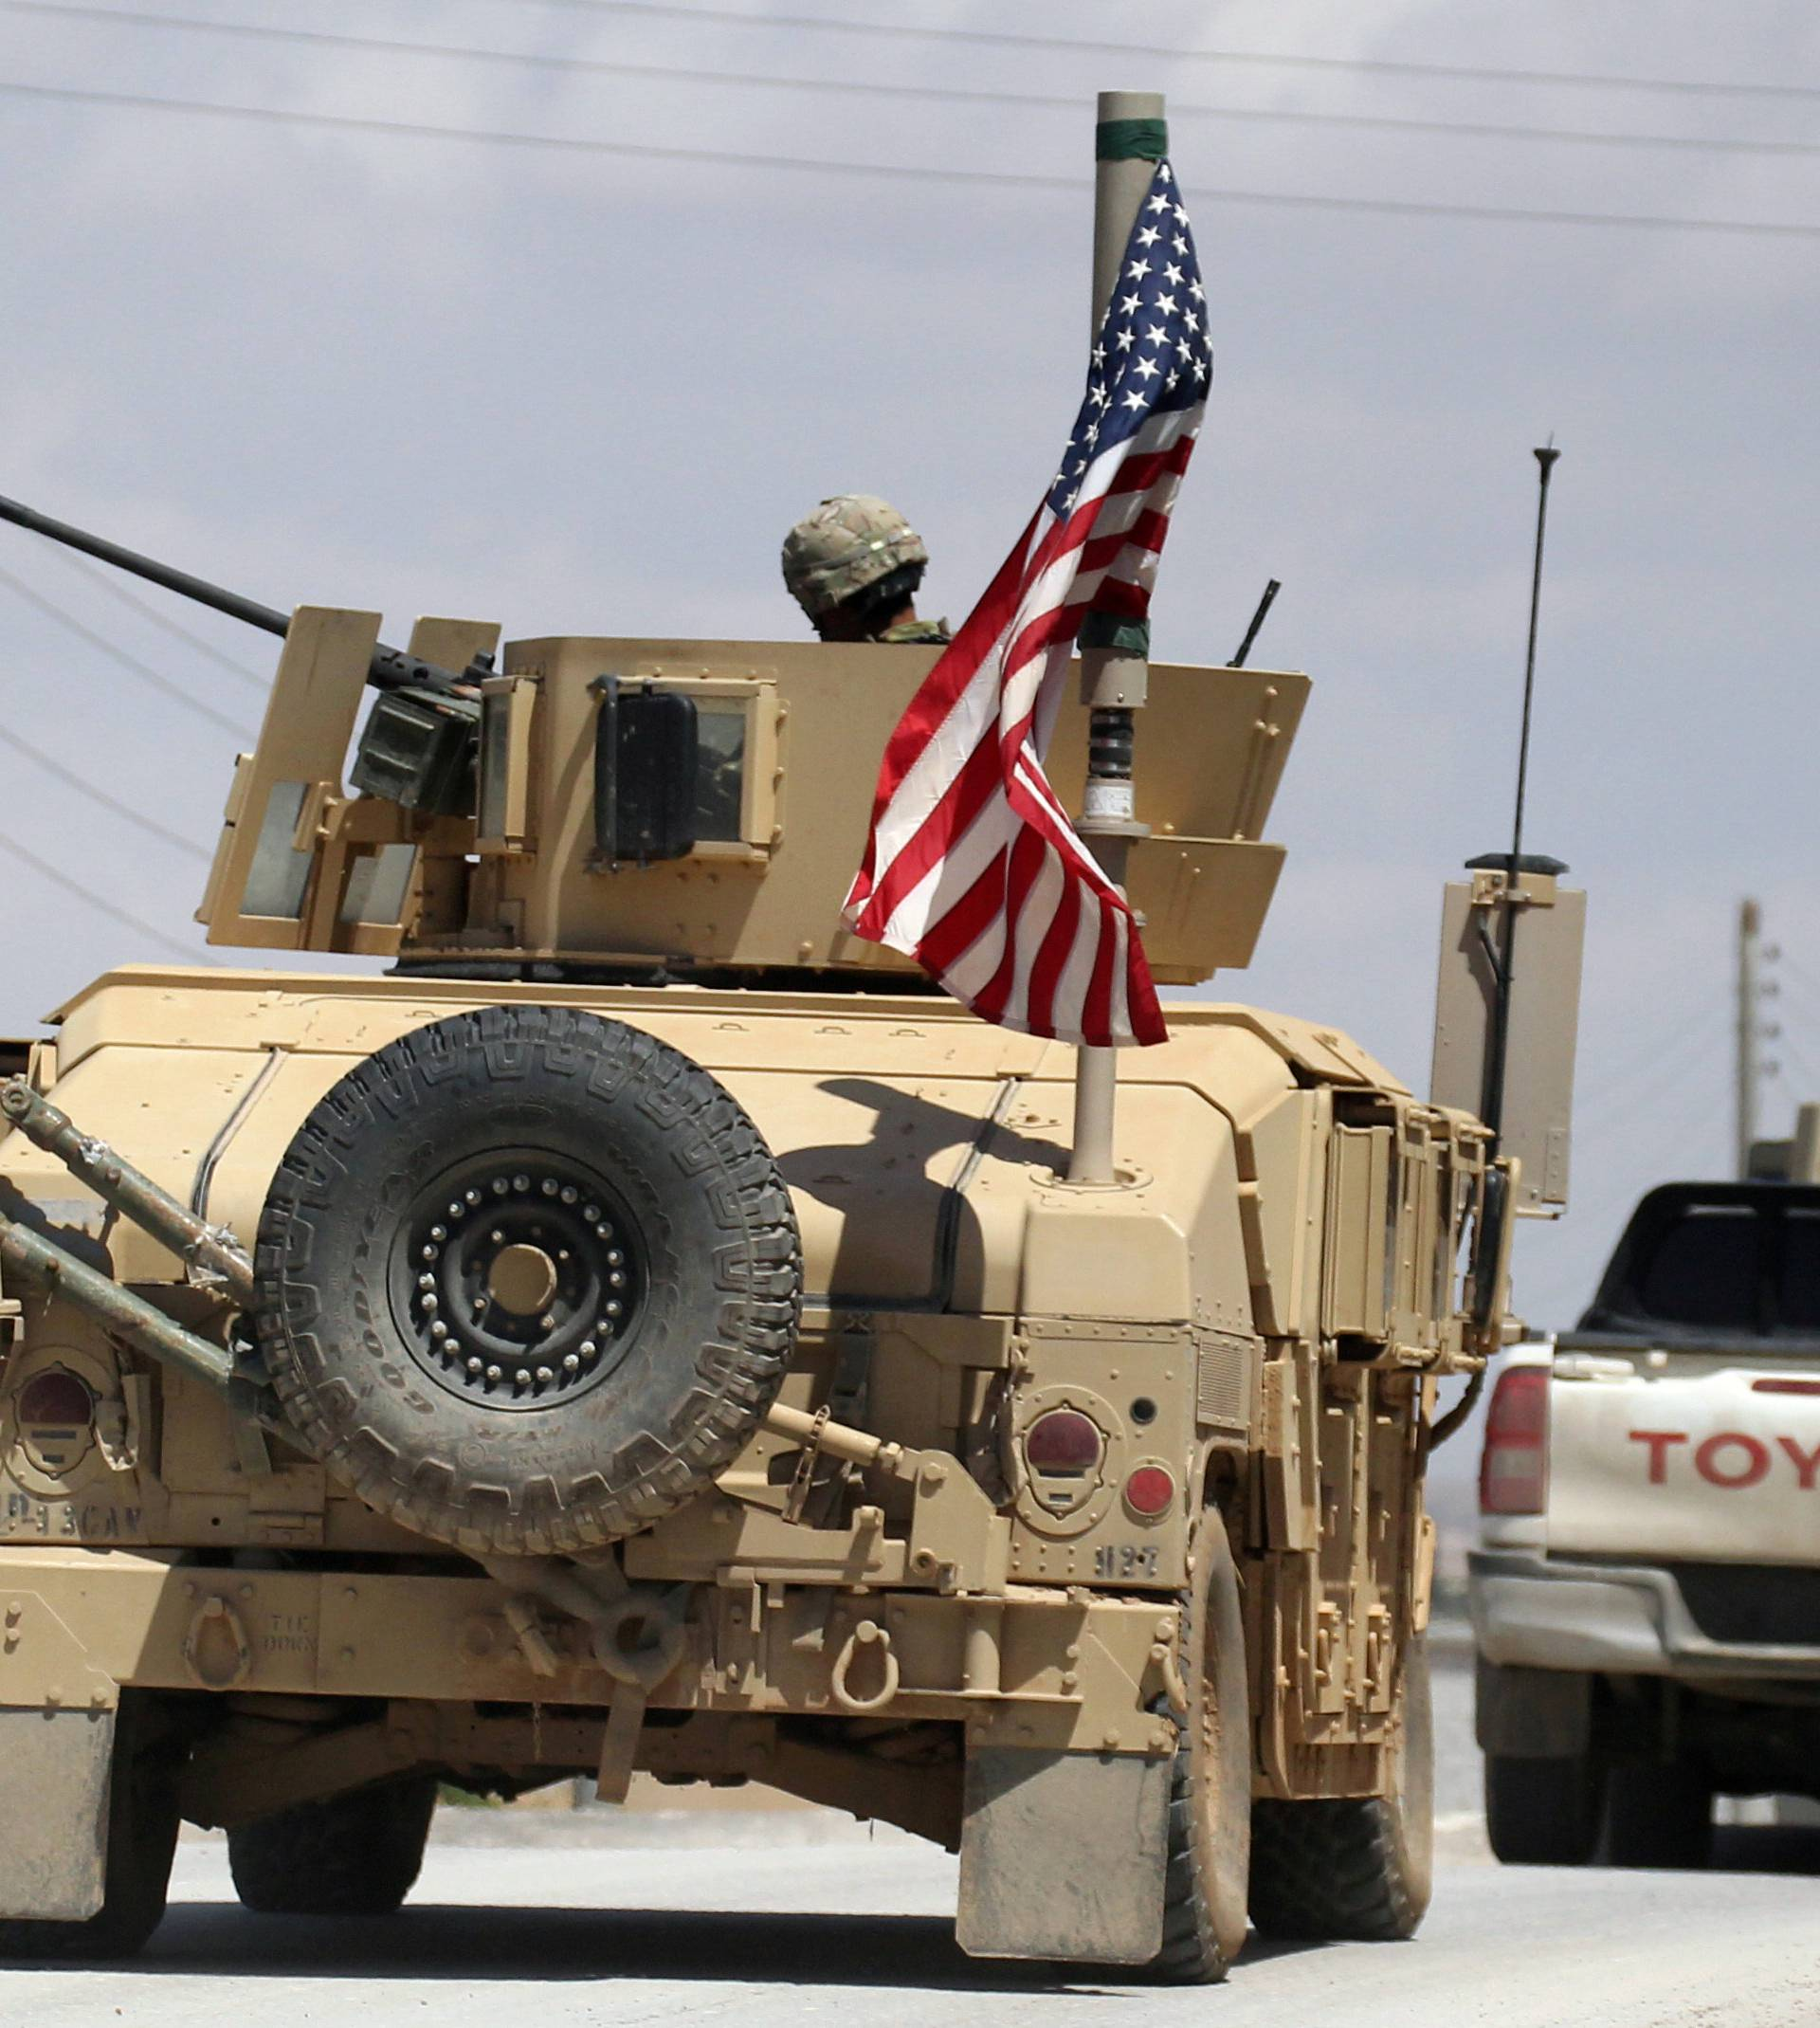 FILE PHOTO: The U.S. flag flutters on a military vehicle in Manbej countryside